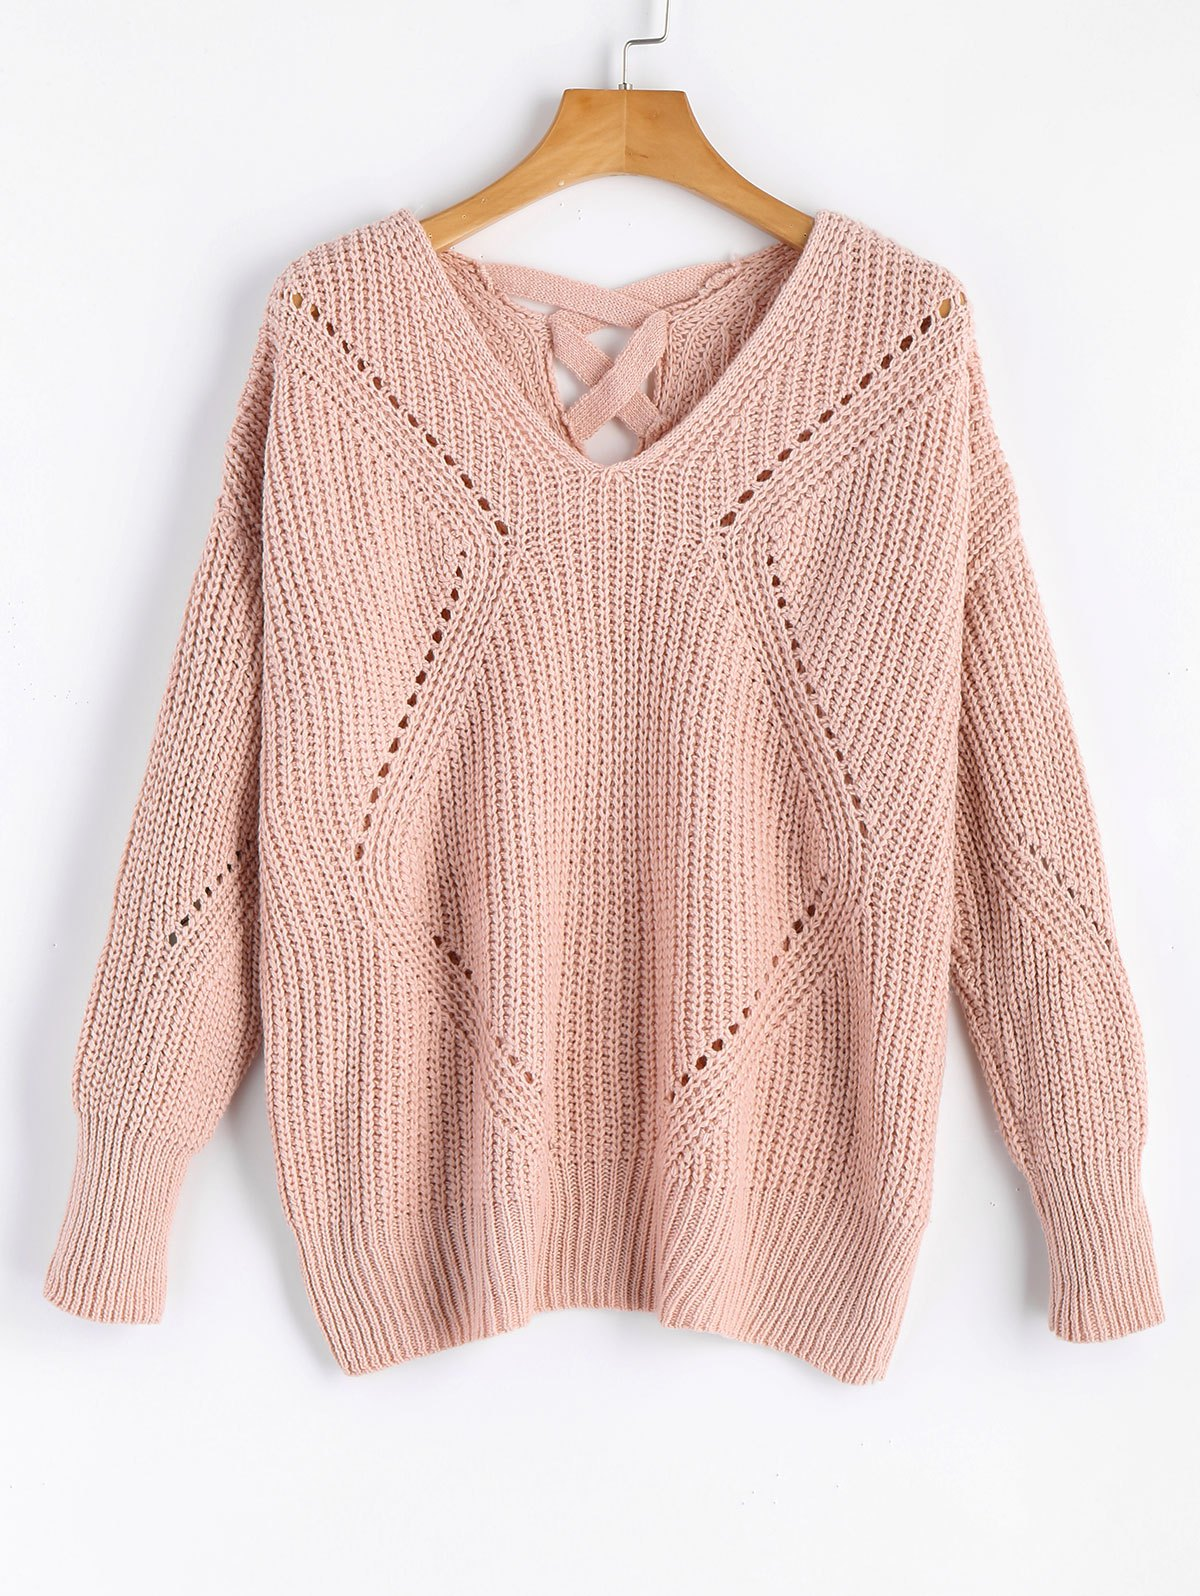 V Neck Criss Cross Sheer SweaterWOMEN<br><br>Size: ONE SIZE; Color: PINK; Type: Pullovers; Material: Acrylic,Cotton,Polyester; Sleeve Length: Full; Collar: V-Neck; Style: Fashion; Pattern Type: Solid; Weight: 0.5050kg; Package Contents: 1 x Sweater;